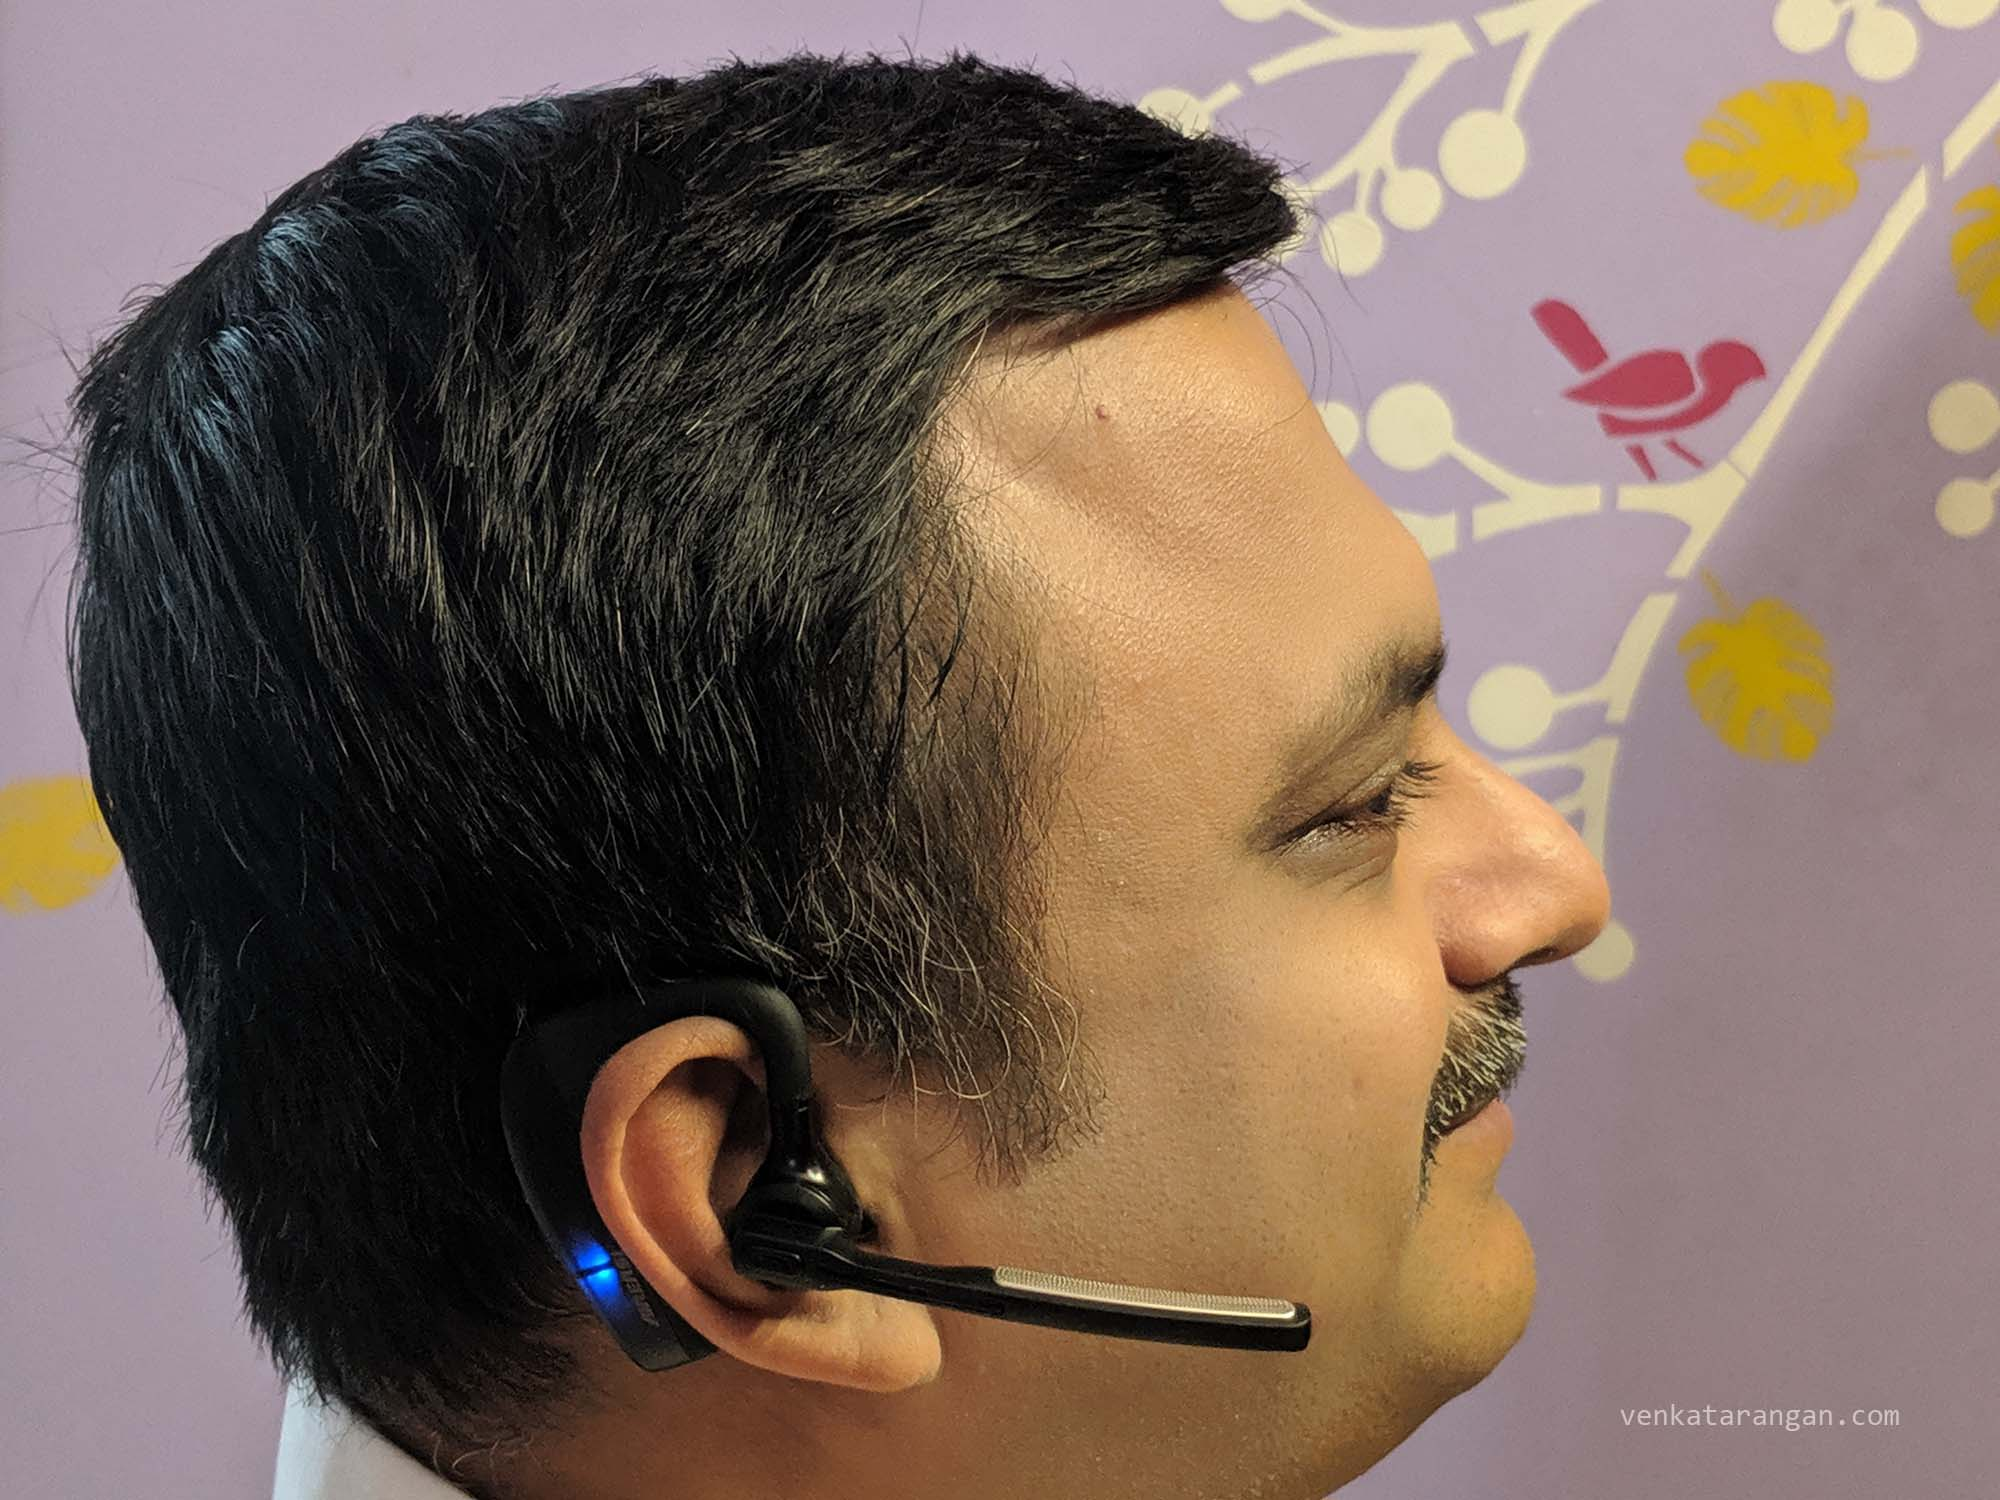 Venkatarangan with K10 Wireless Bluetooth Headset for Noise Free Calls